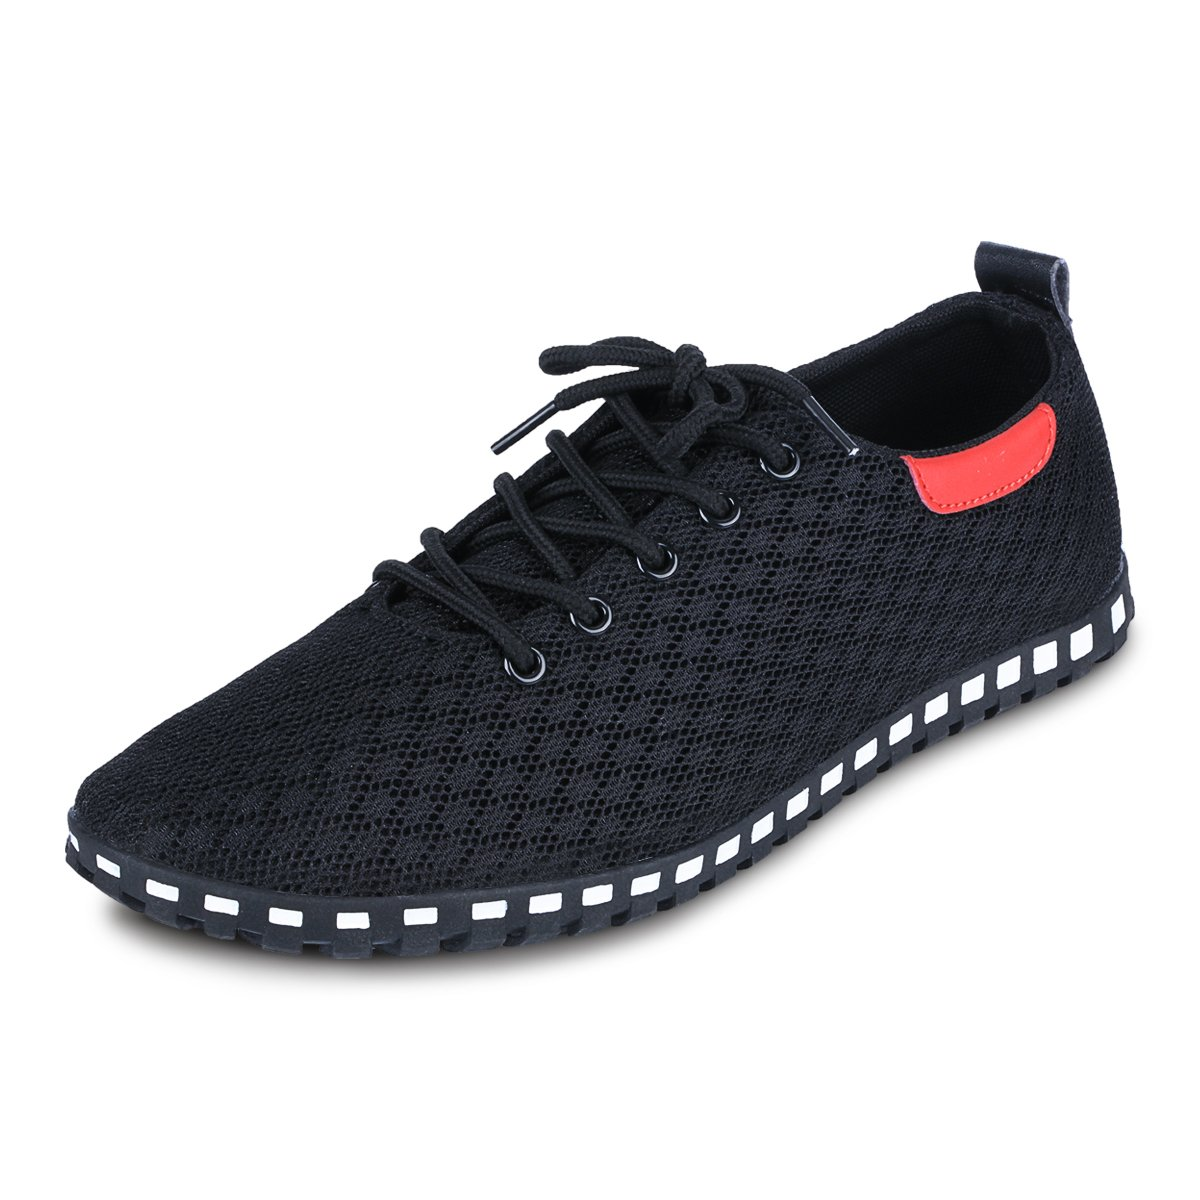 EASTIANO Men's Casual Breathable Mesh Fabric Shoes (11, Black)